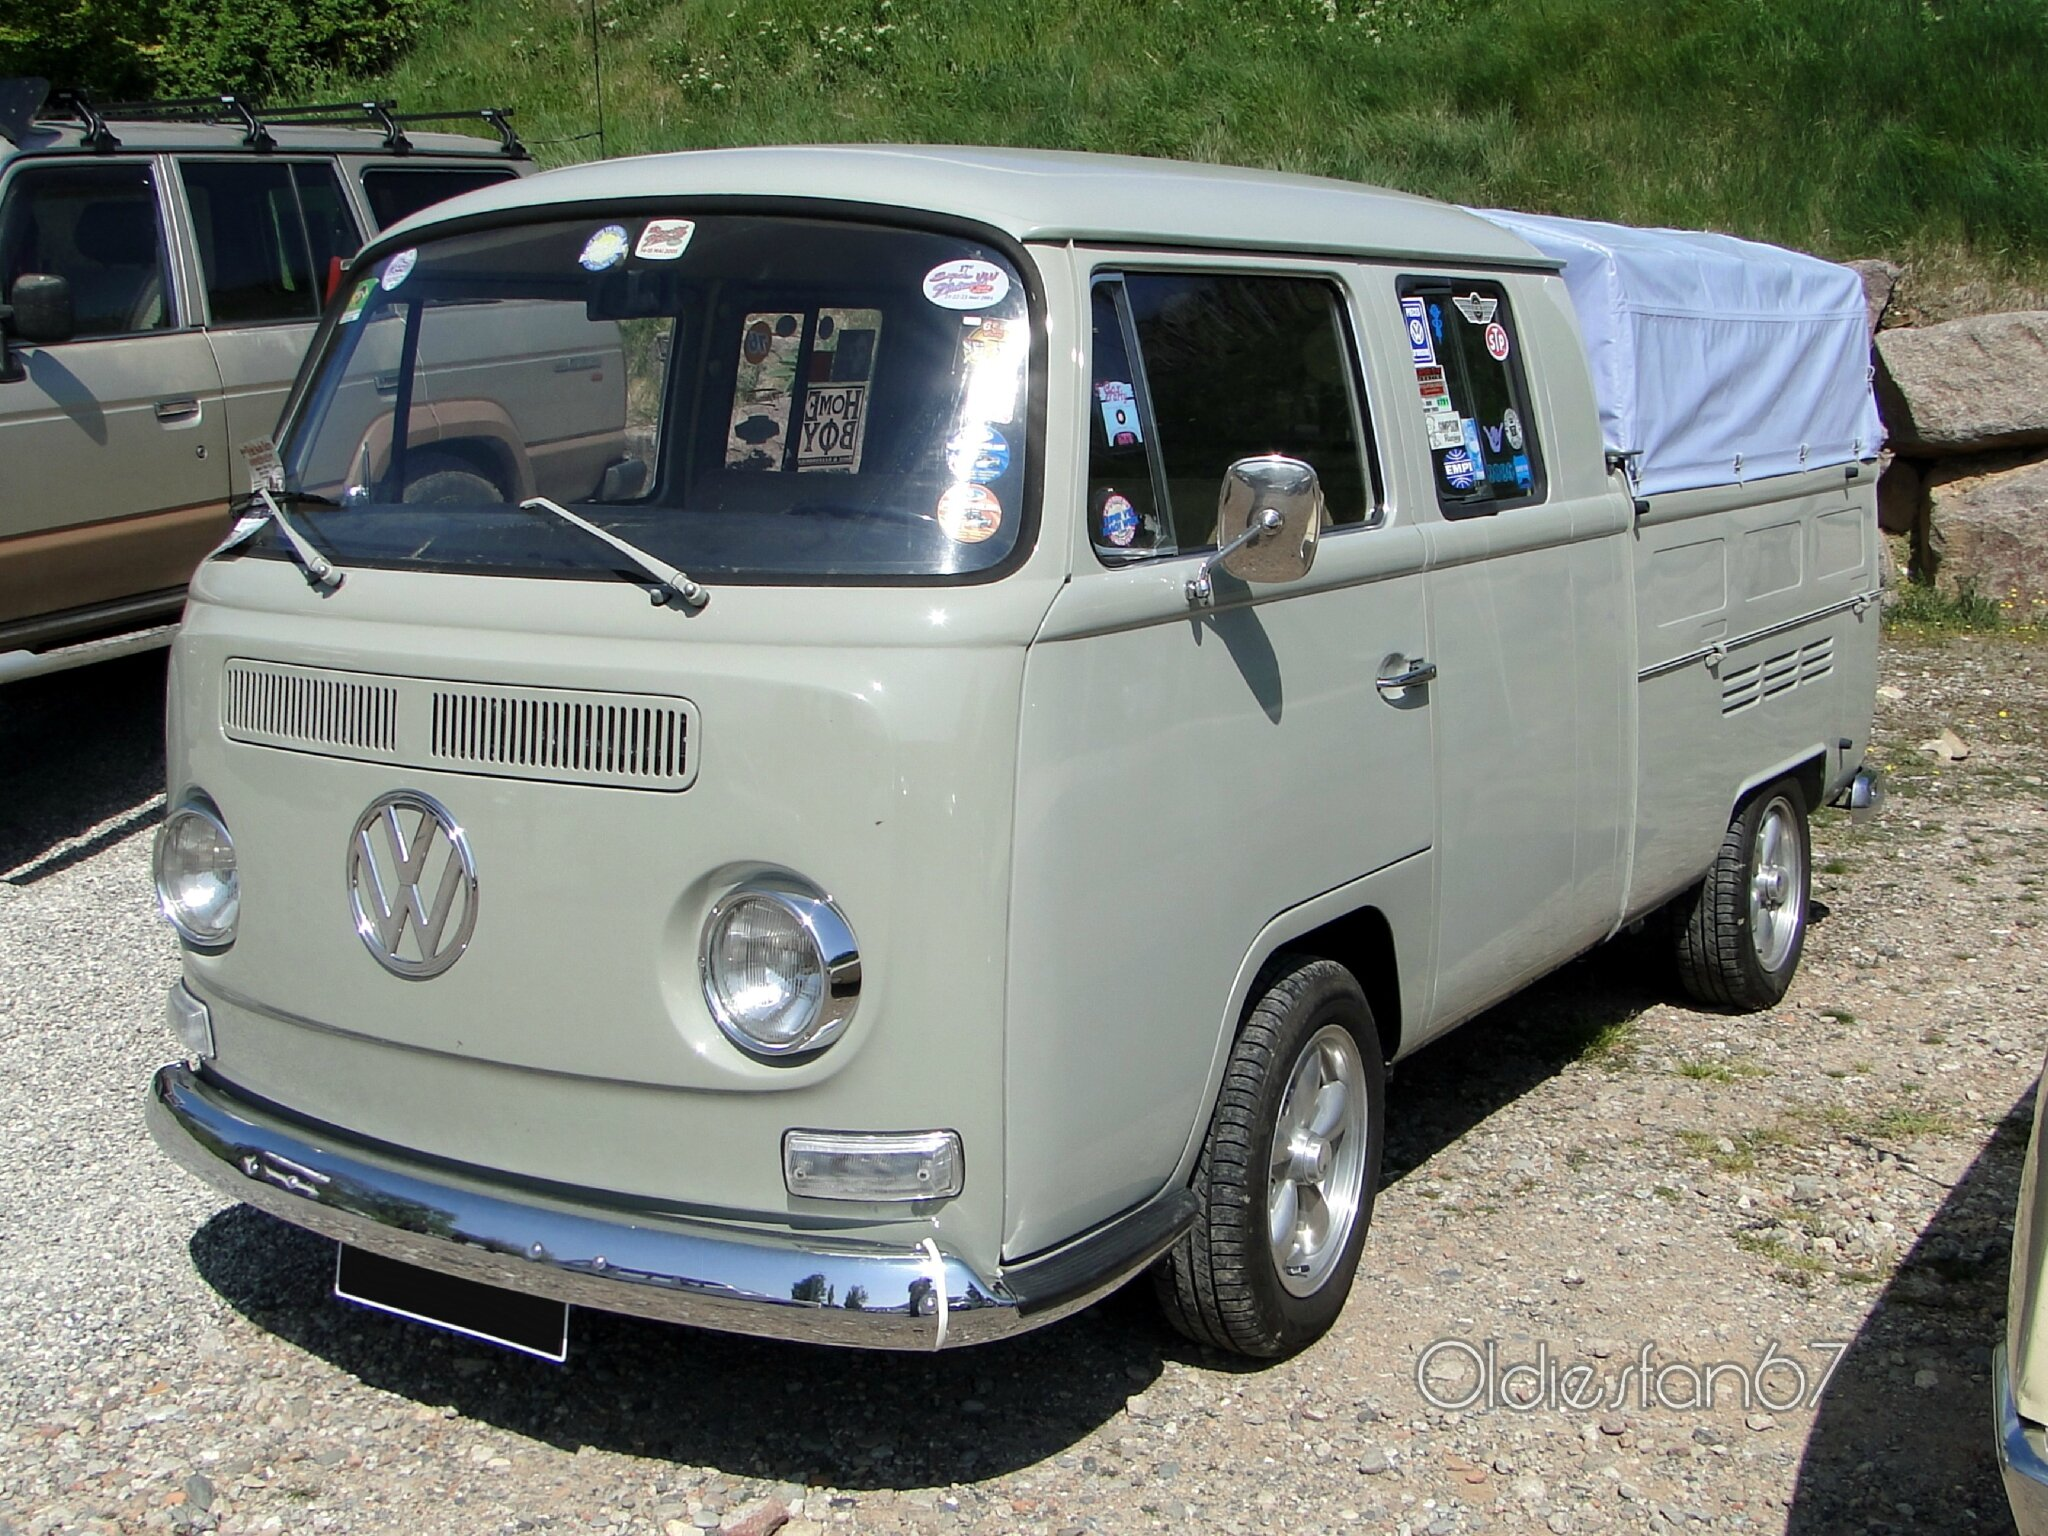 volkswagen combi doka double cabine oldiesfan67 mon blog auto. Black Bedroom Furniture Sets. Home Design Ideas